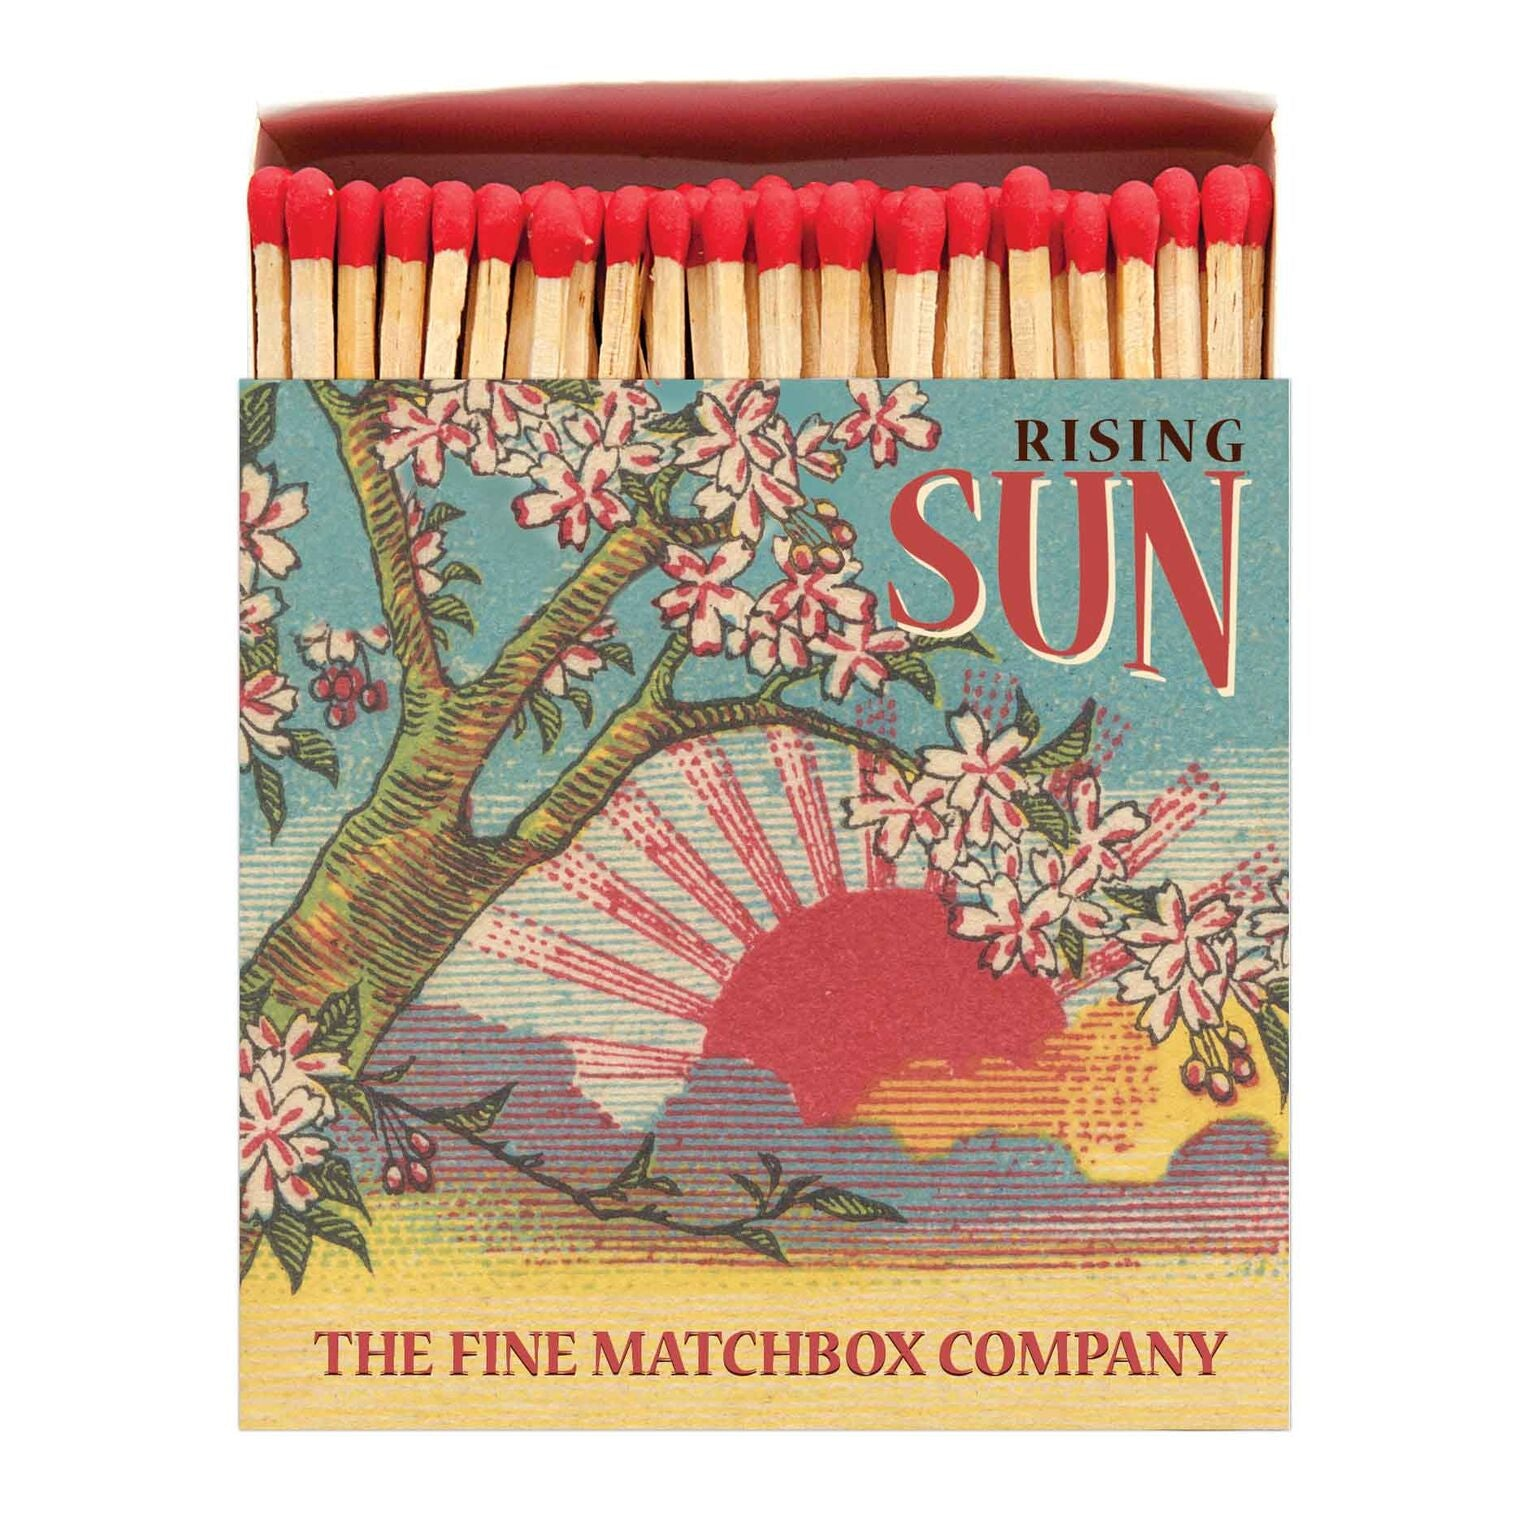 'Rising Sun' Matches by Archivist